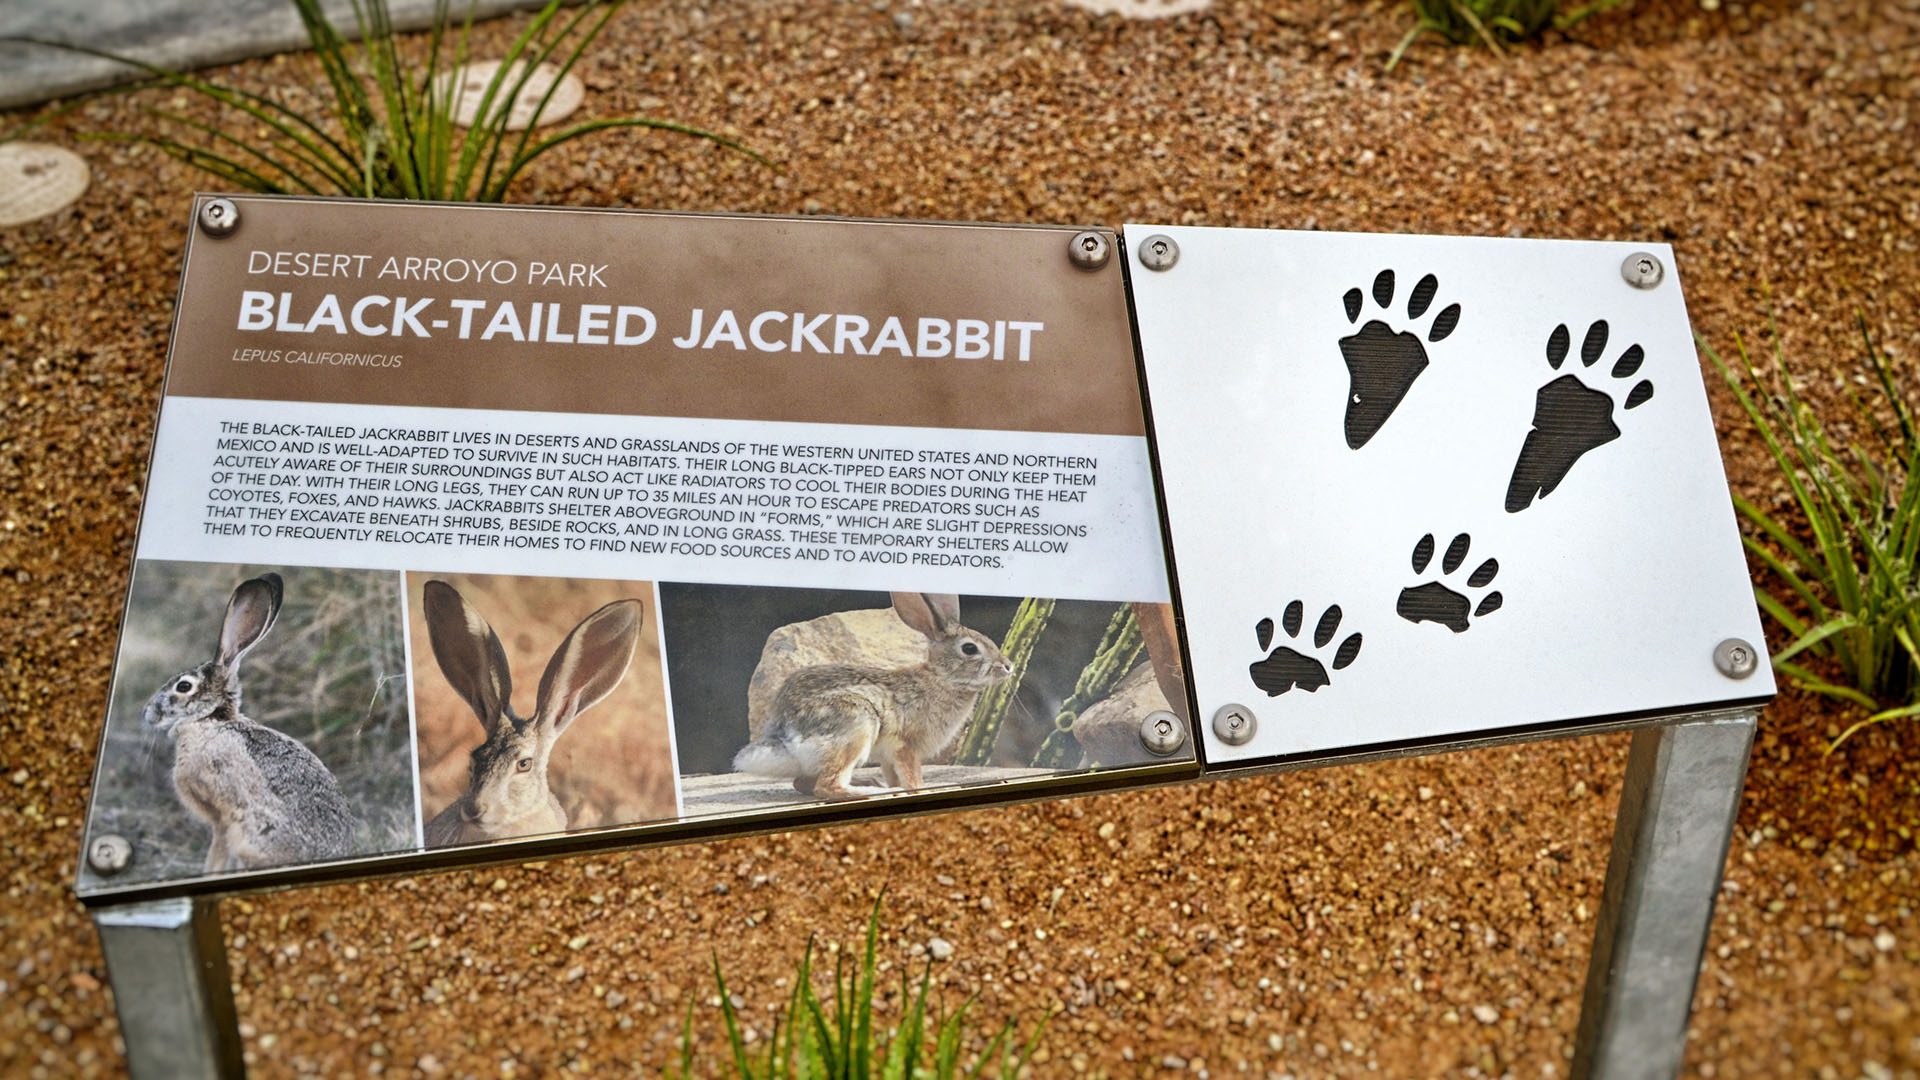 Educational signage about jackrabbits